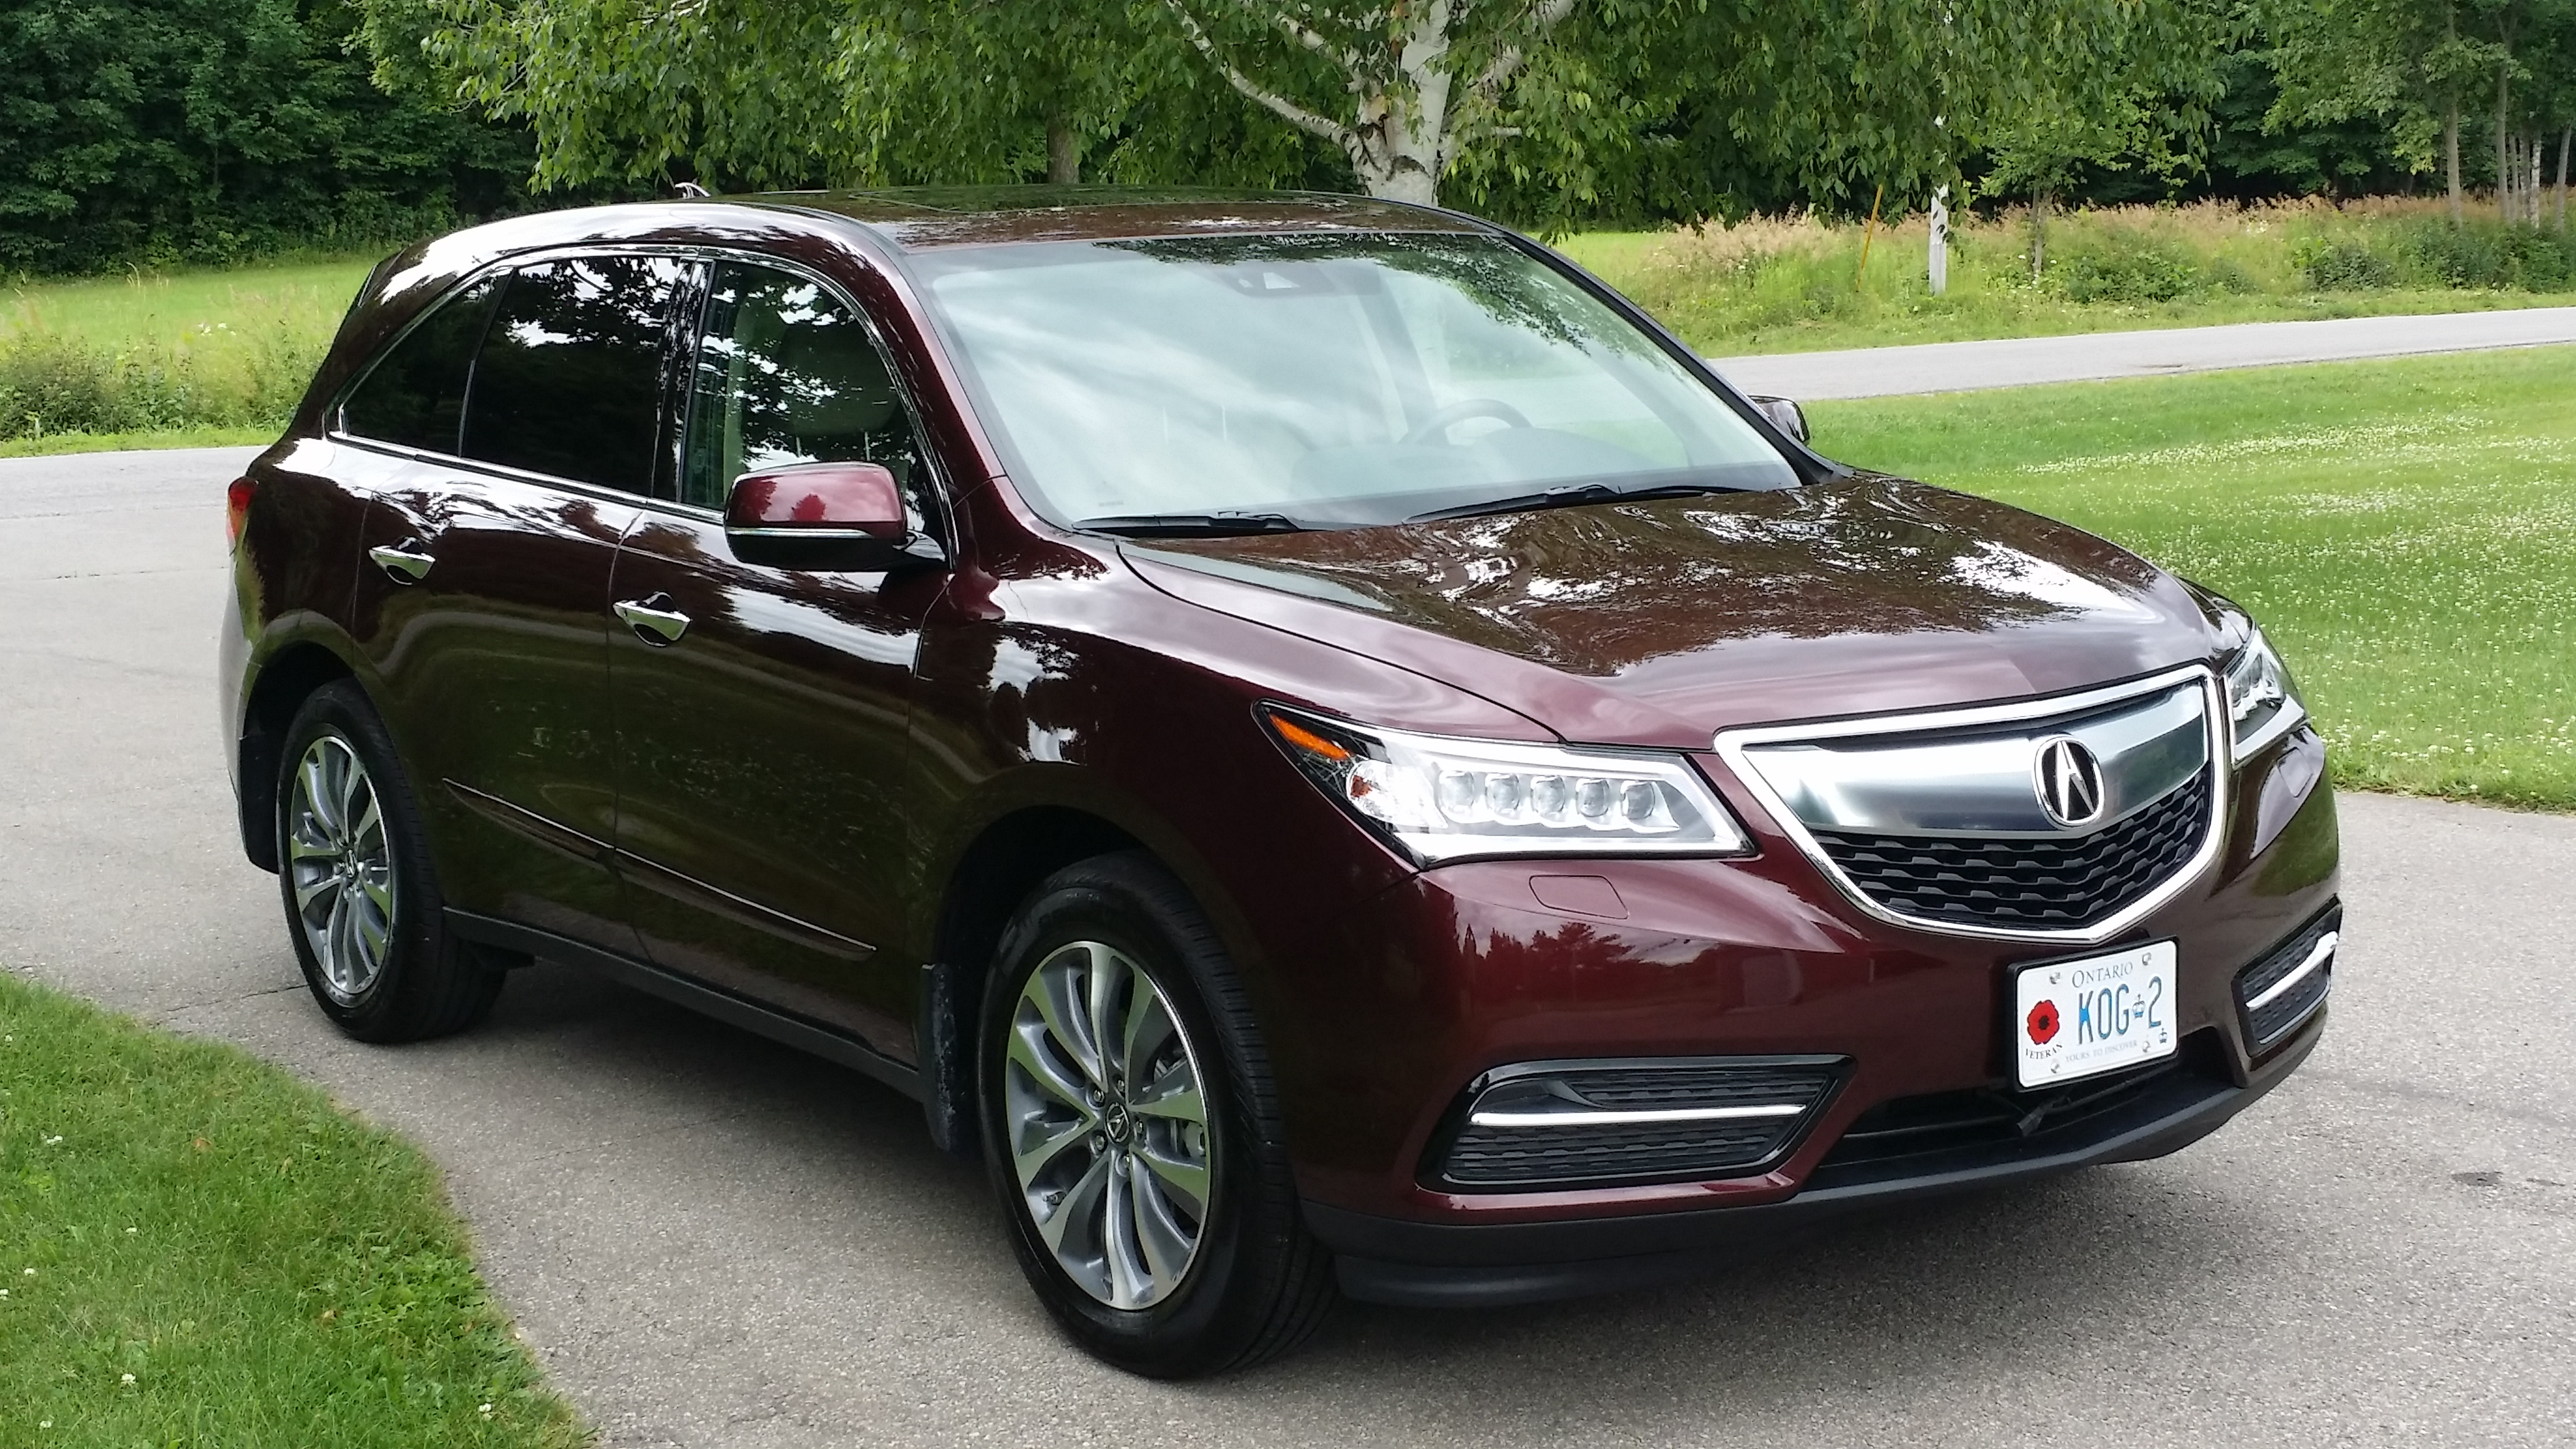 extraordinary for bestluxurycars mdx touring afton acura at us wy sale